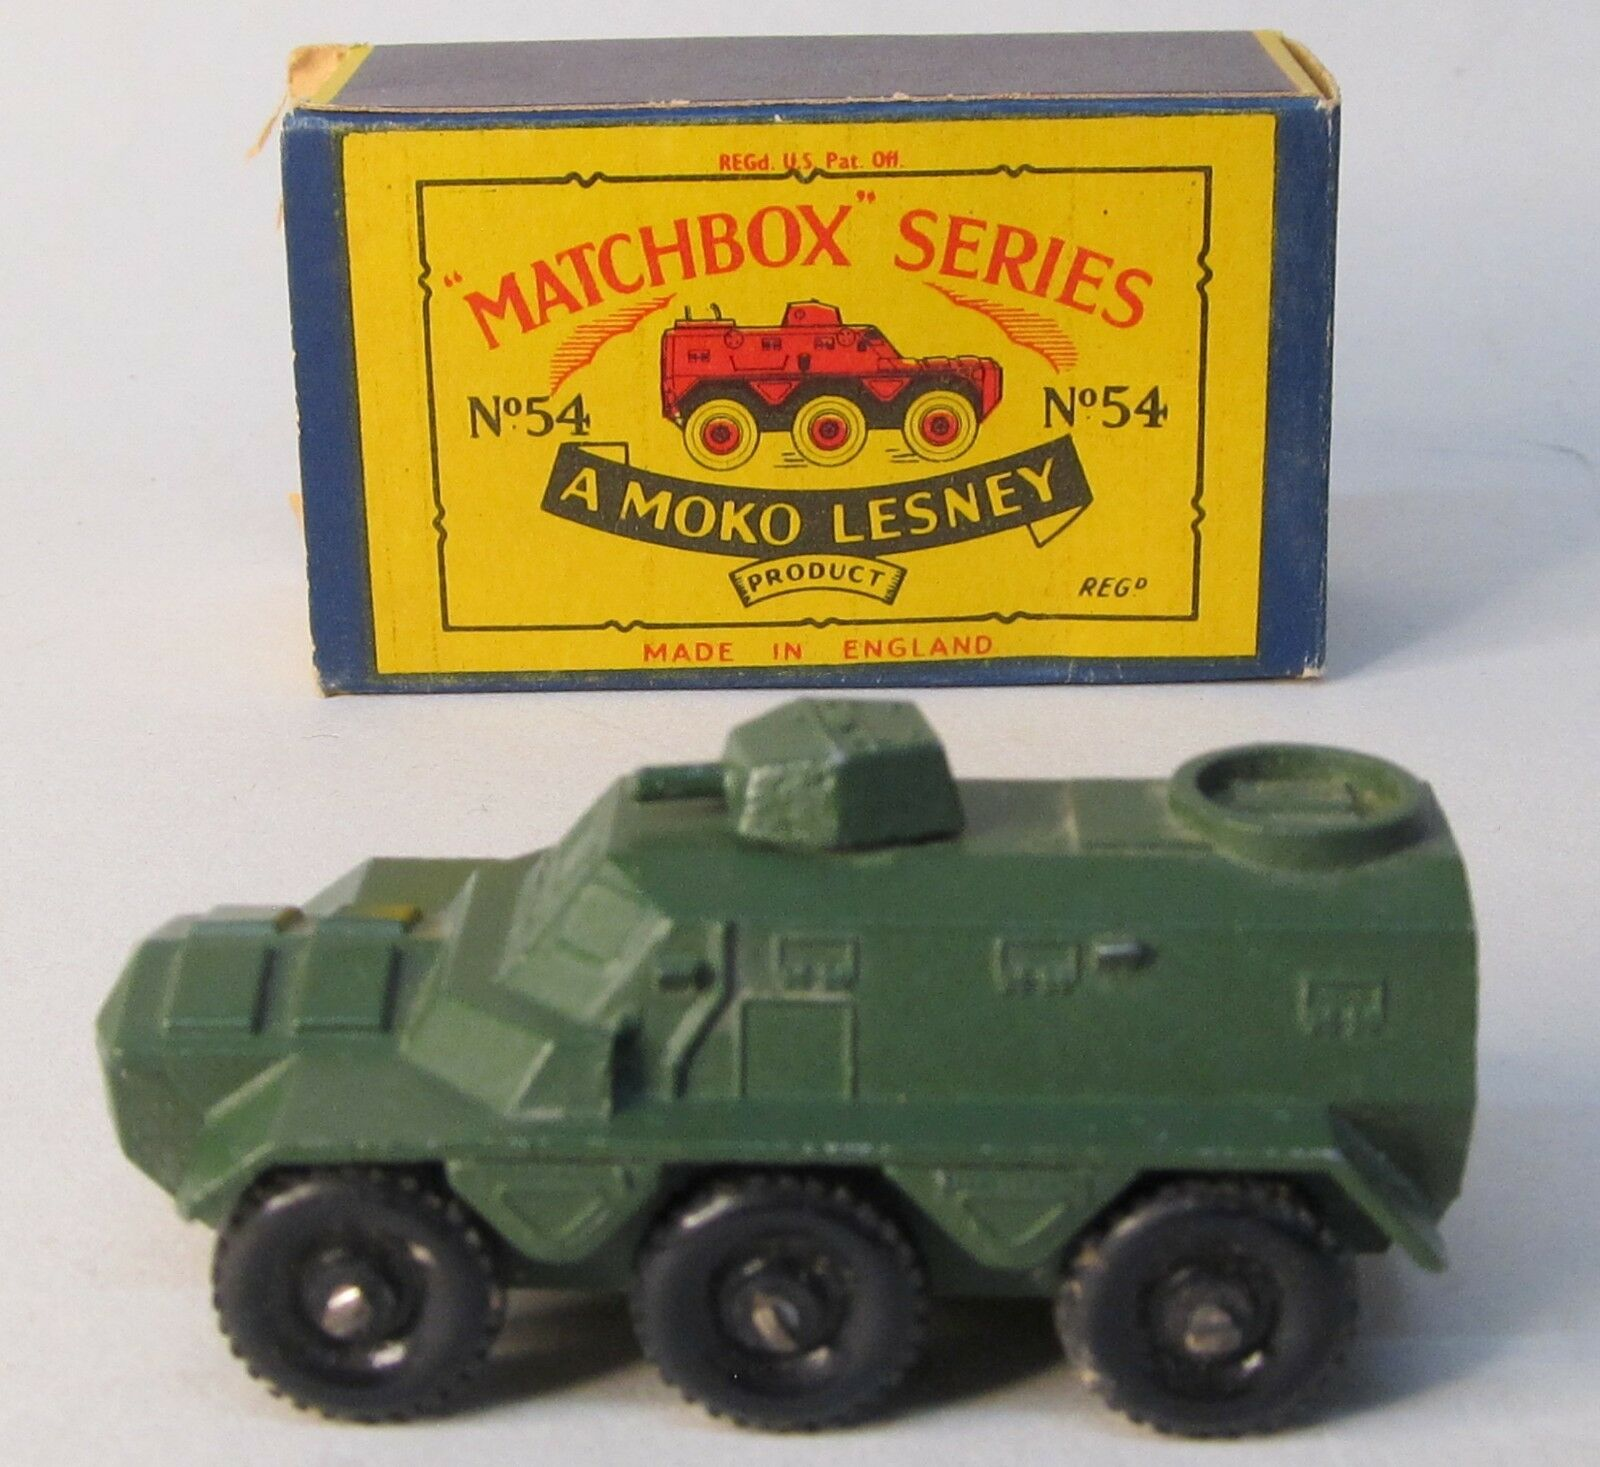 Matchbox SARACEN PERSONNELL CARRIER military Flat Green  in Type B3 box